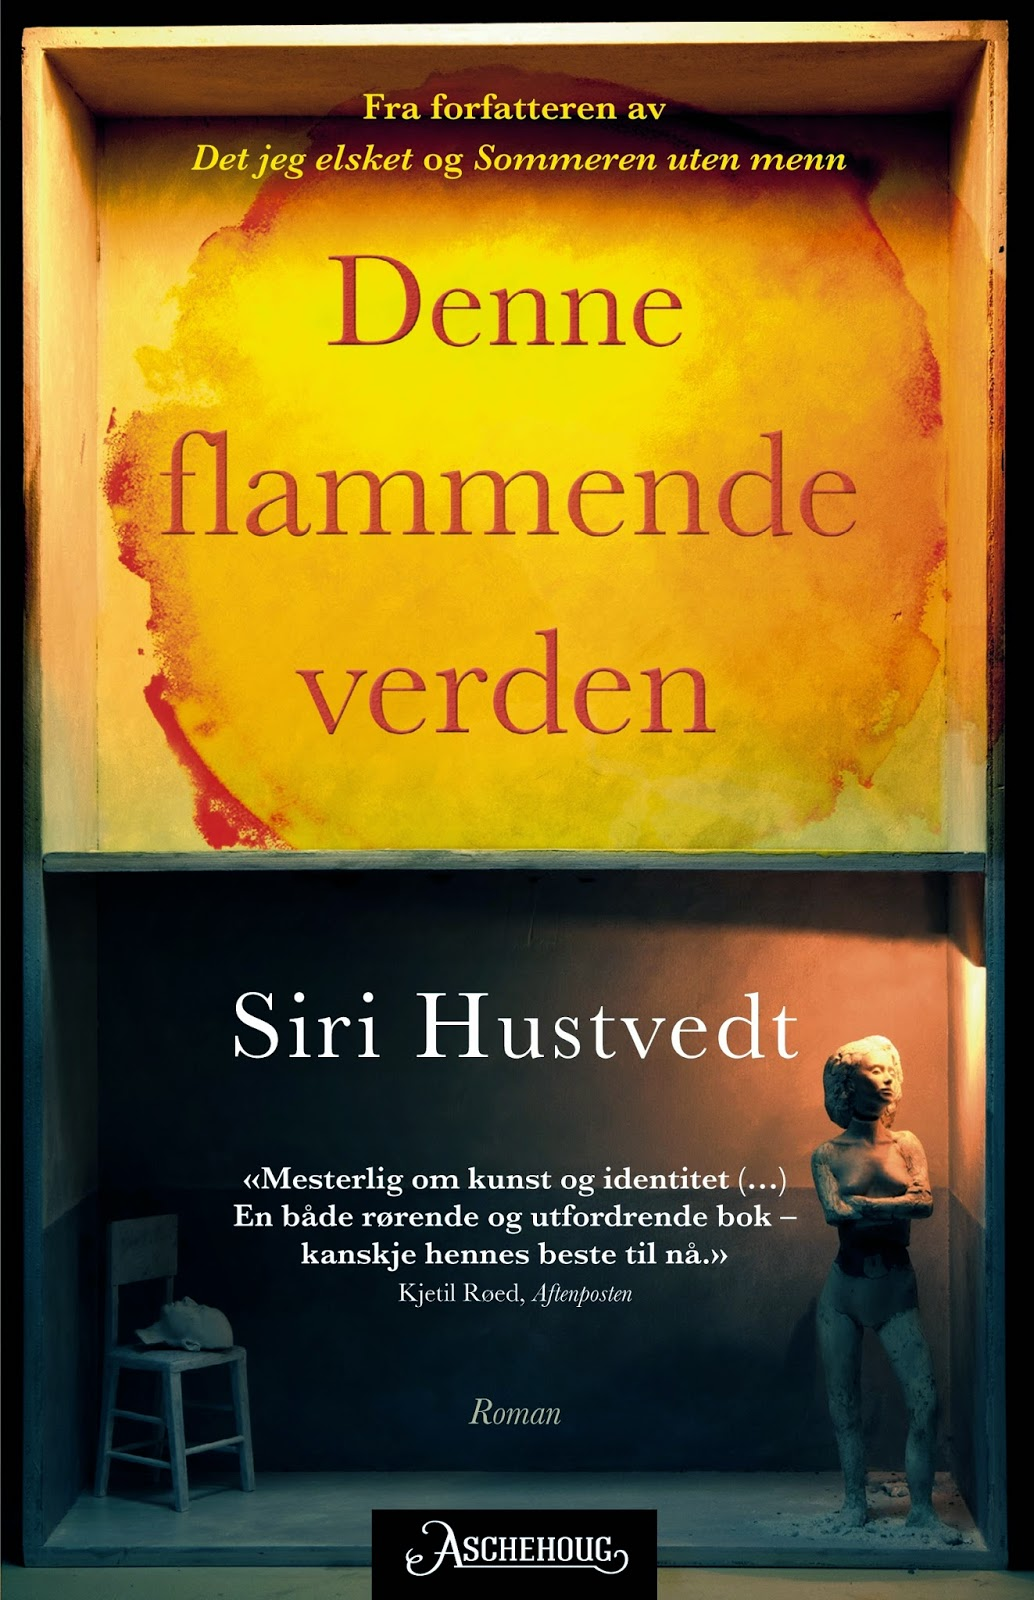 living with strangers by siri hustvedt Marion ettlinger credit siri hustvedt erik, recently divorced and living alone, becomes increasingly caught up in dreams and reveries about his father while (frustratingly) reticent about his ex-wife and the reason for their split, he speaks at length about his ambiguous attachment to miranda, his new downstairs tenant, a jamaican.